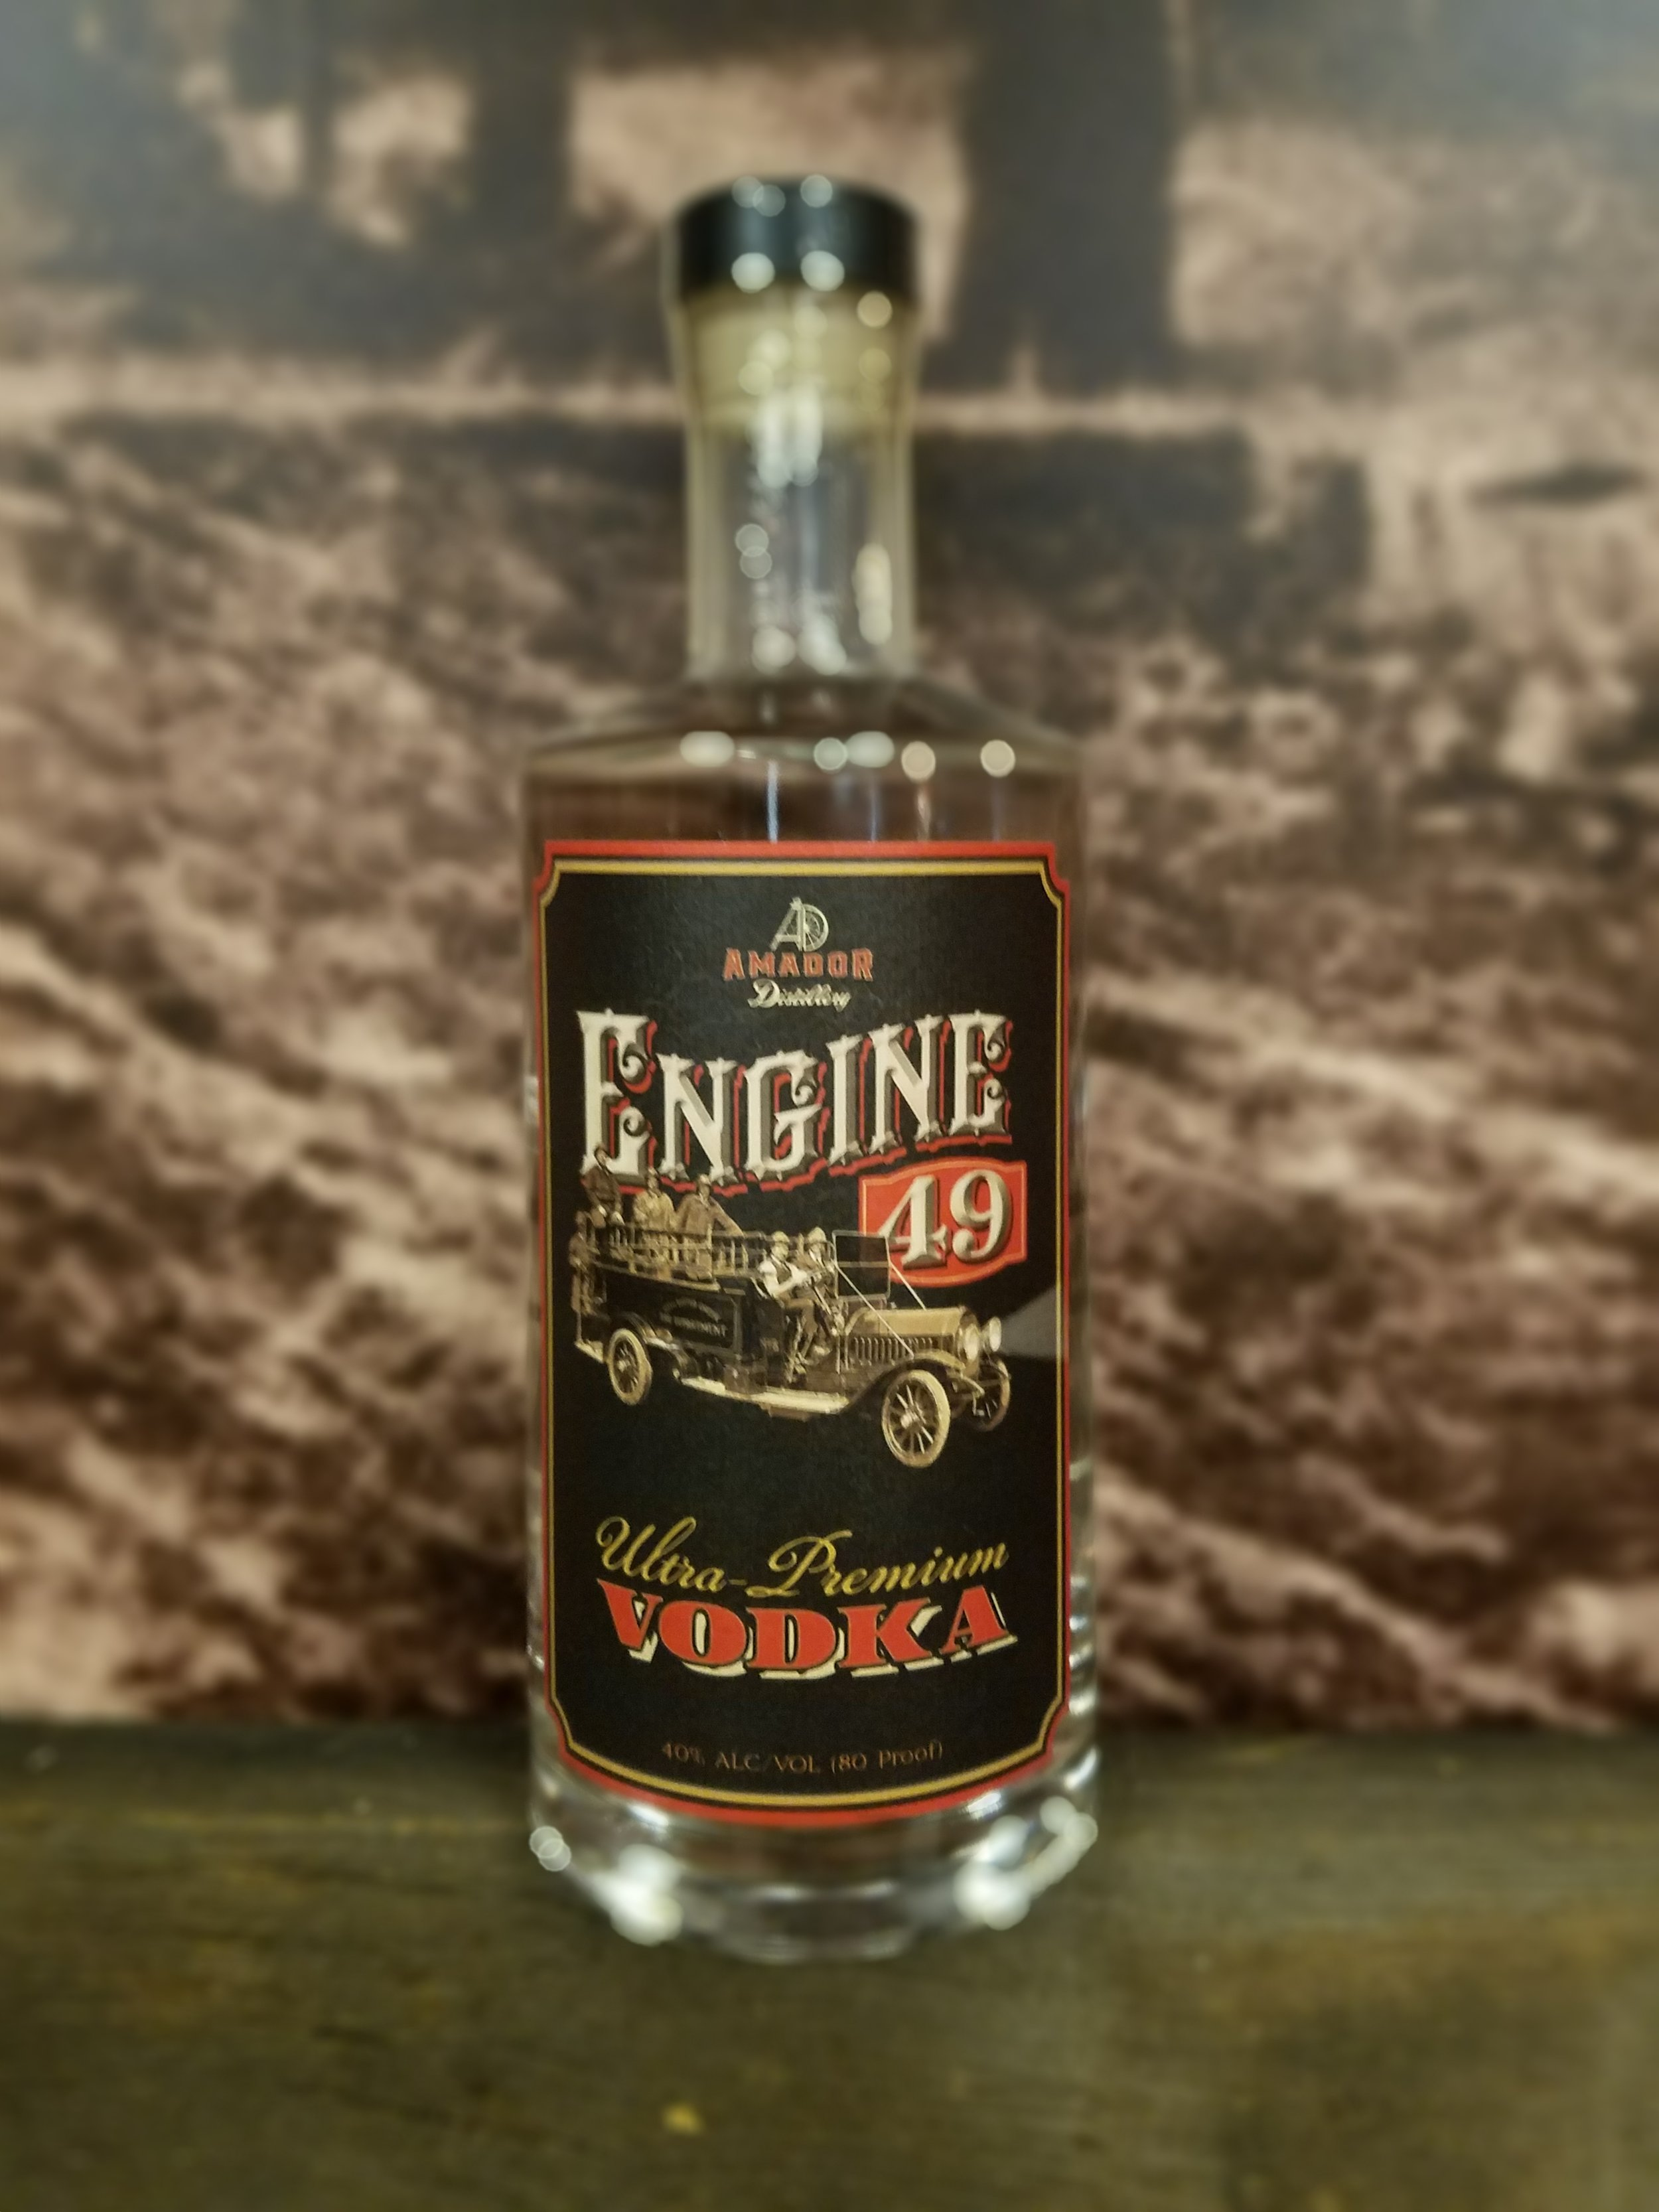 Engine 49 Vodka - This vodka is a straight grain mash bill that works great for cocktails. A straight forward clean 80 proof vodka makes amazing cocktails and works especially great Bloody Mary's.By using a wheat alcohol that is clean and smooth any vodka cocktail recipe will work with this bottle, as the clean crisp profile allows its flavor to shine without overpowering the other ingredients. A real team player for any bar.80 PF